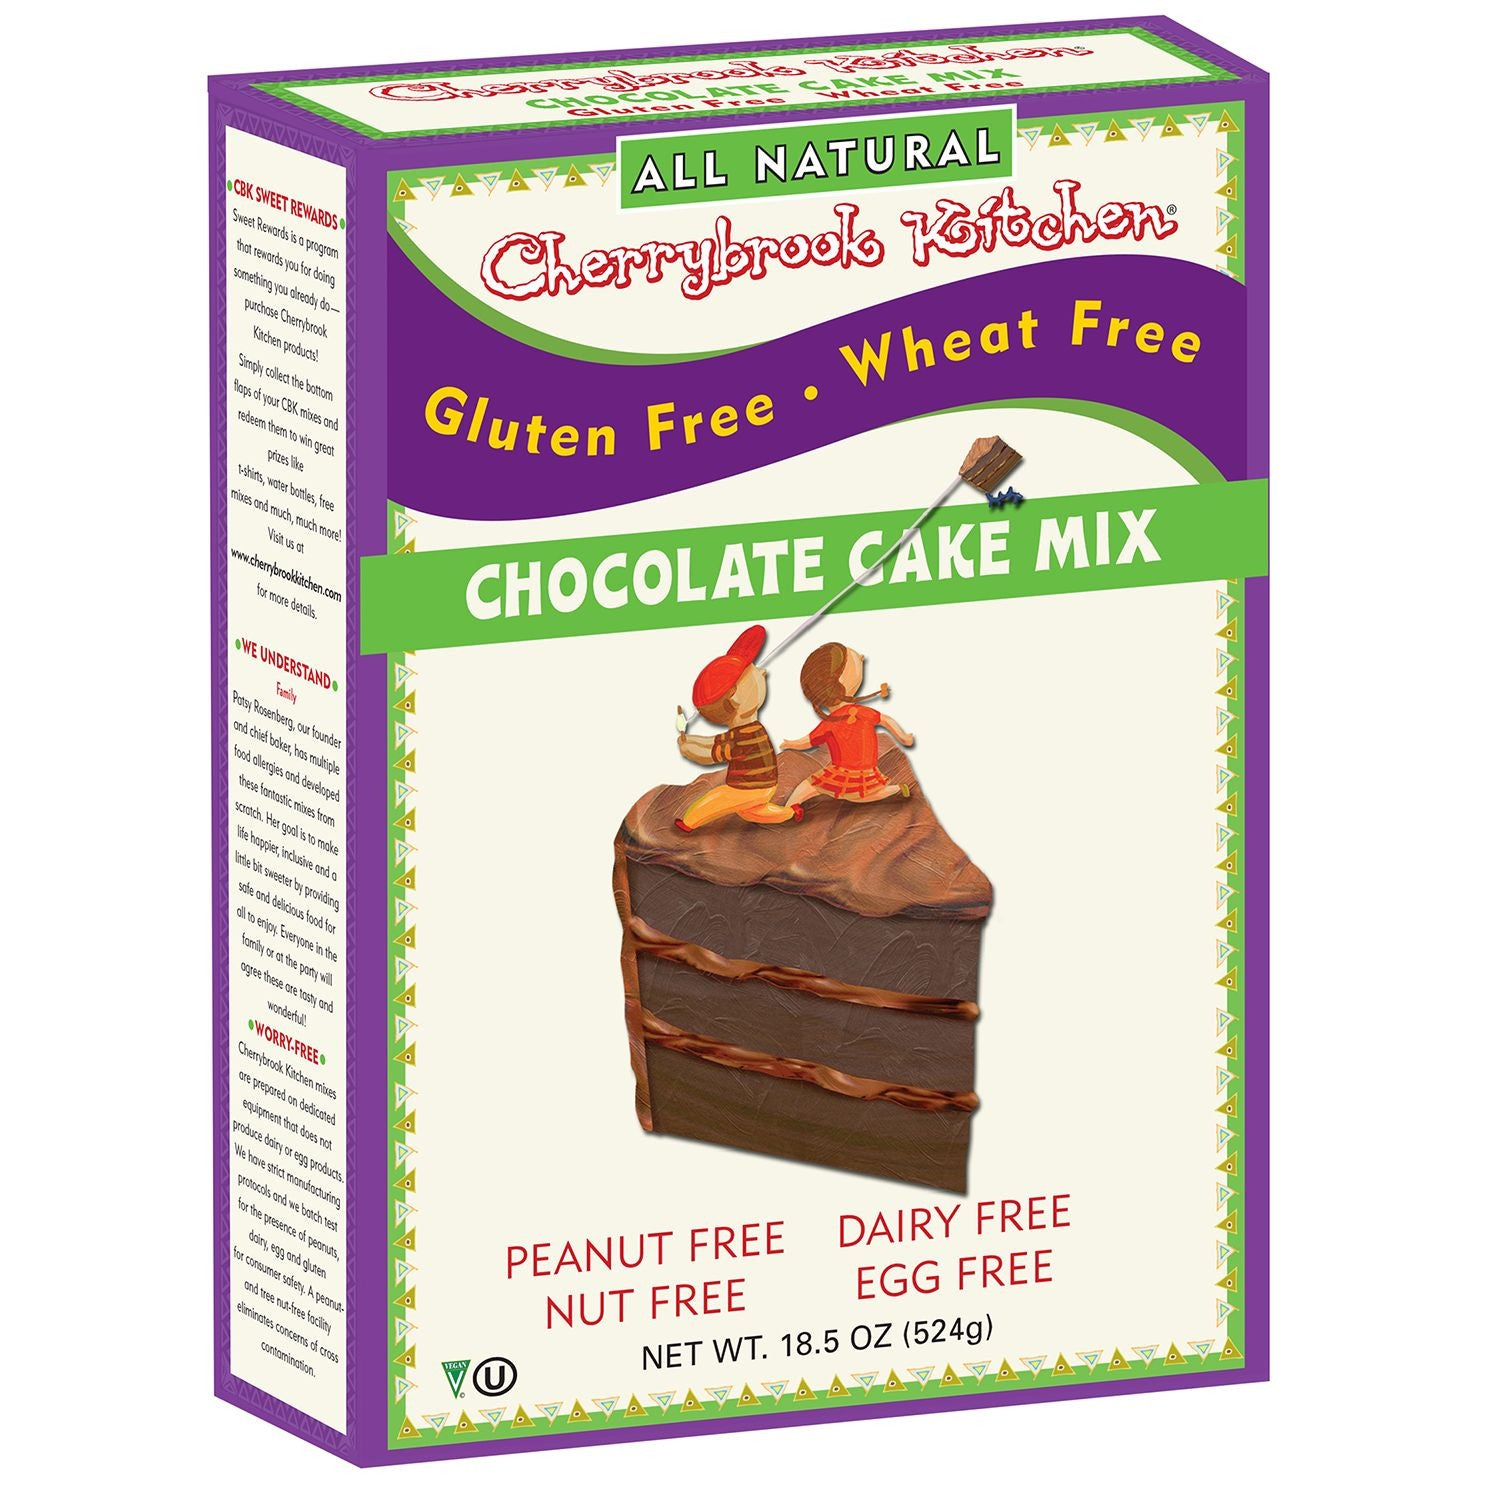 Cherrybrook Kitchens Gluten Free Chocolate Cake Mix, 16.4 Oz (Pack of 6)